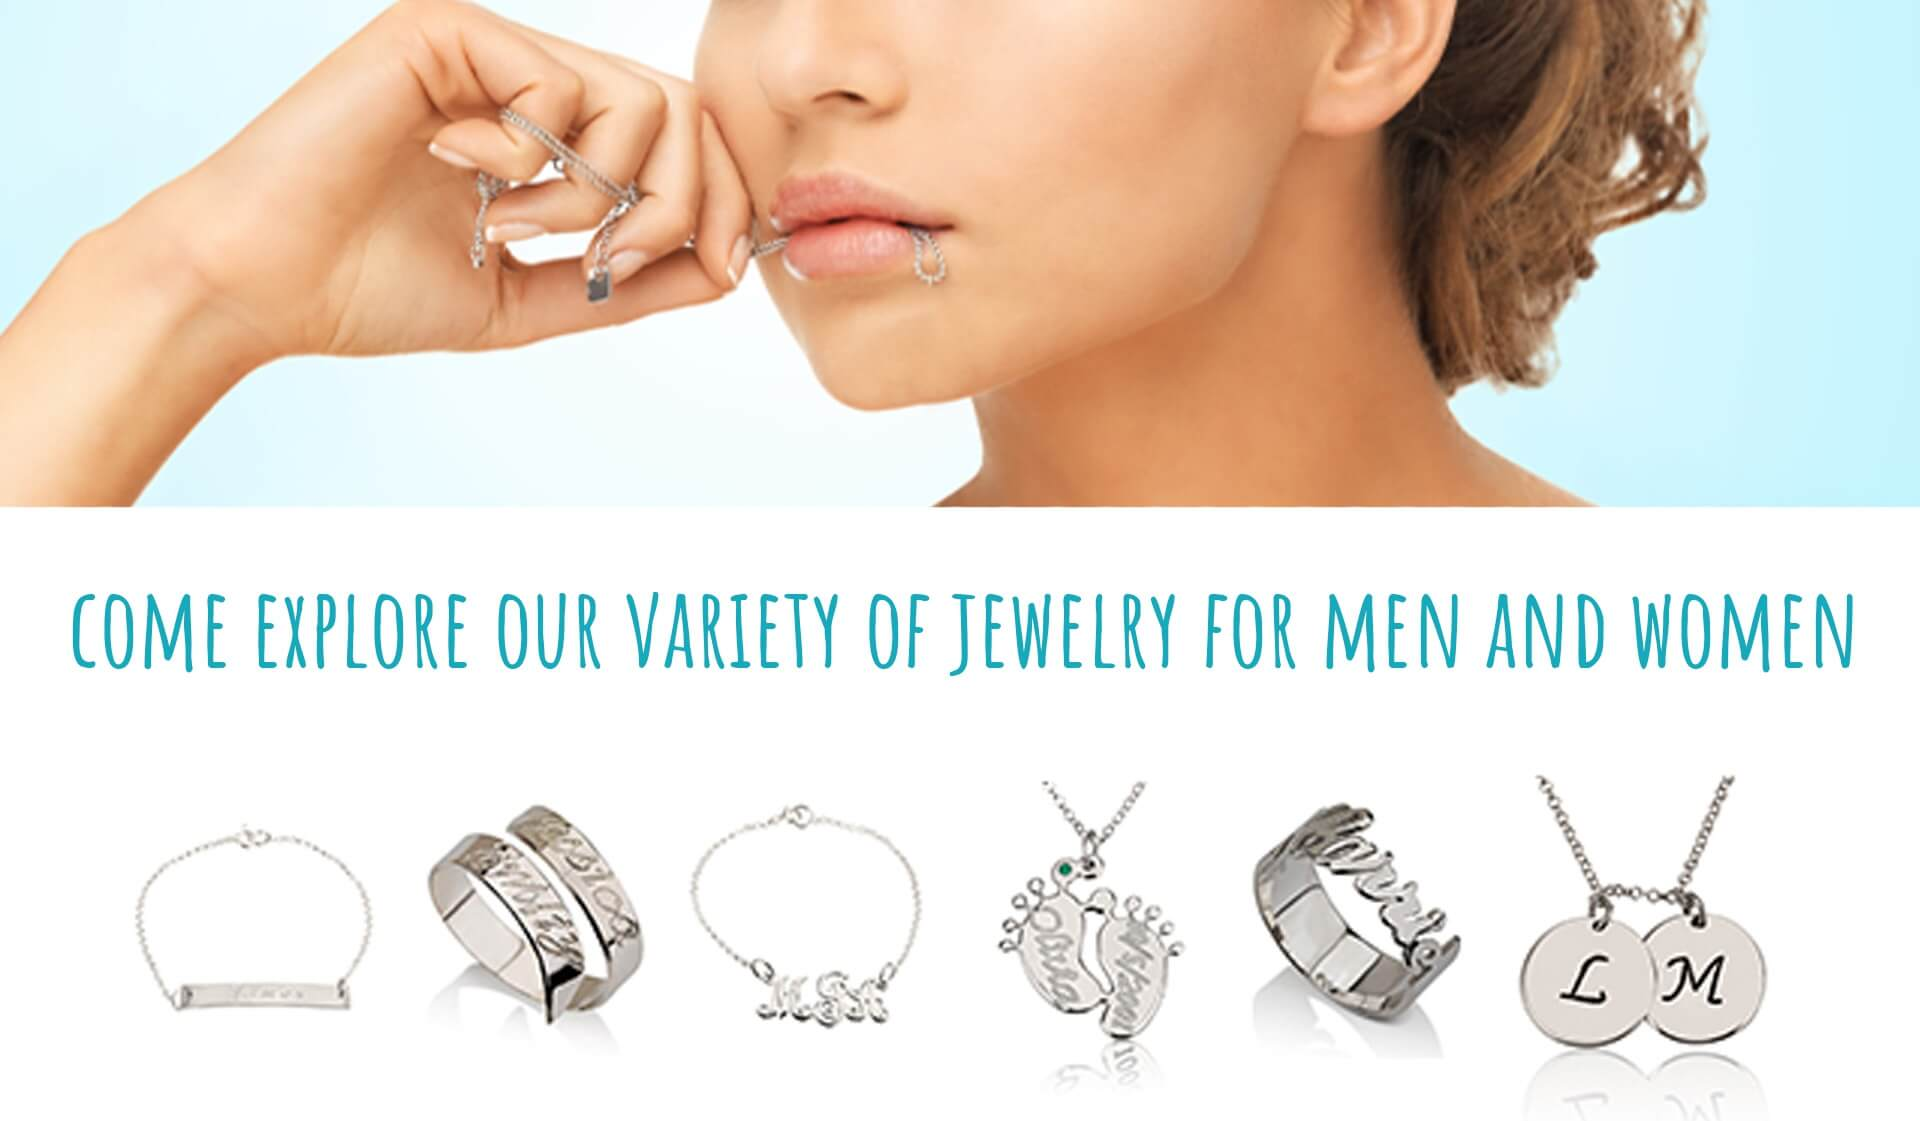 Explore our Jewelry